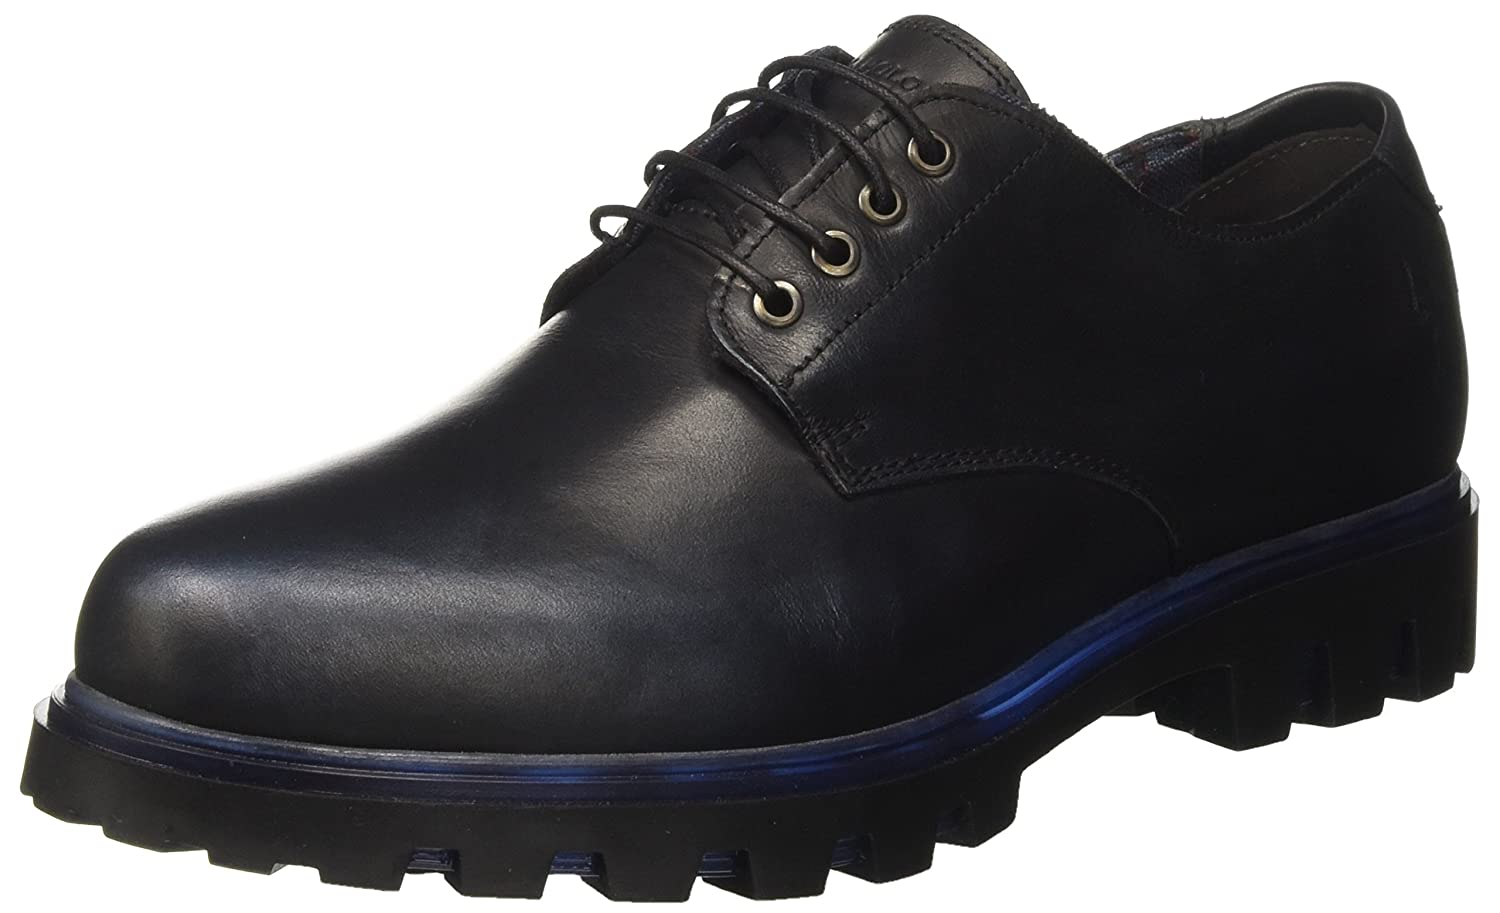 U.S.POLO ASSN. Sue, Nero Chaussures à U.S.POLO Lacets Femme (Black/Blue) Nero (Black/Blue) 4c8121c - gis9ma7le.space